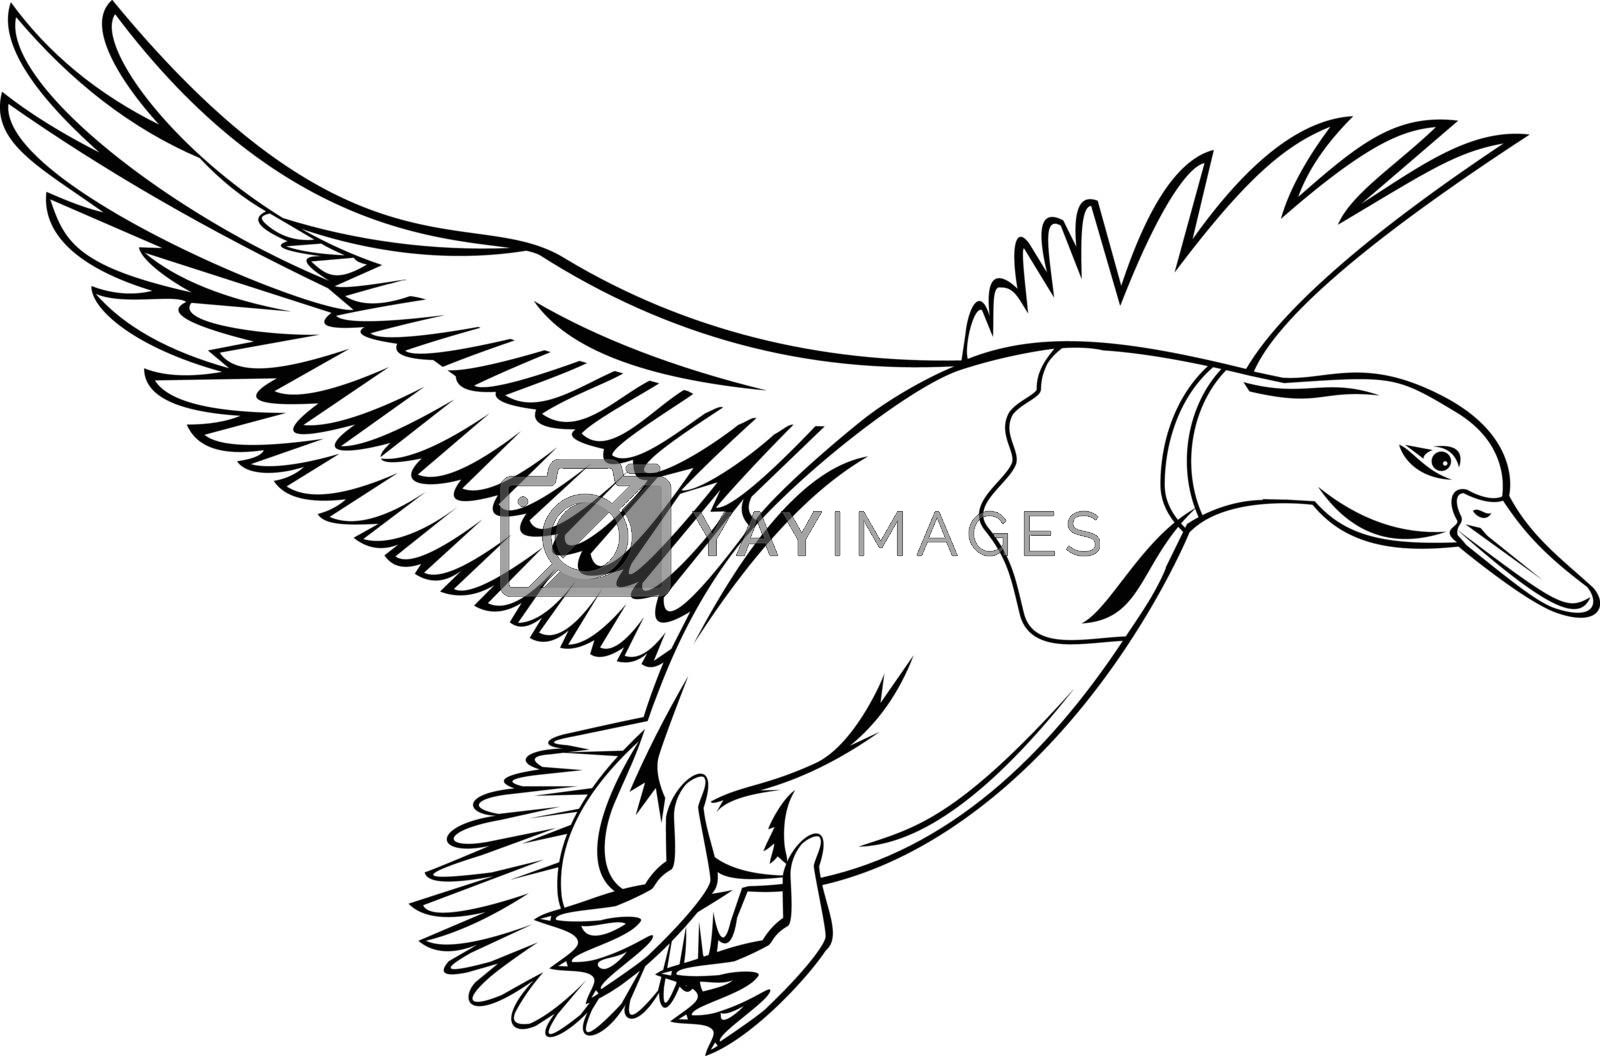 Retro style illustration of a drake male bird mallard, a dabbling duck that is subfamily Anatinae of the waterfowl family Anatidae, flying up on isolated background done in black and white.